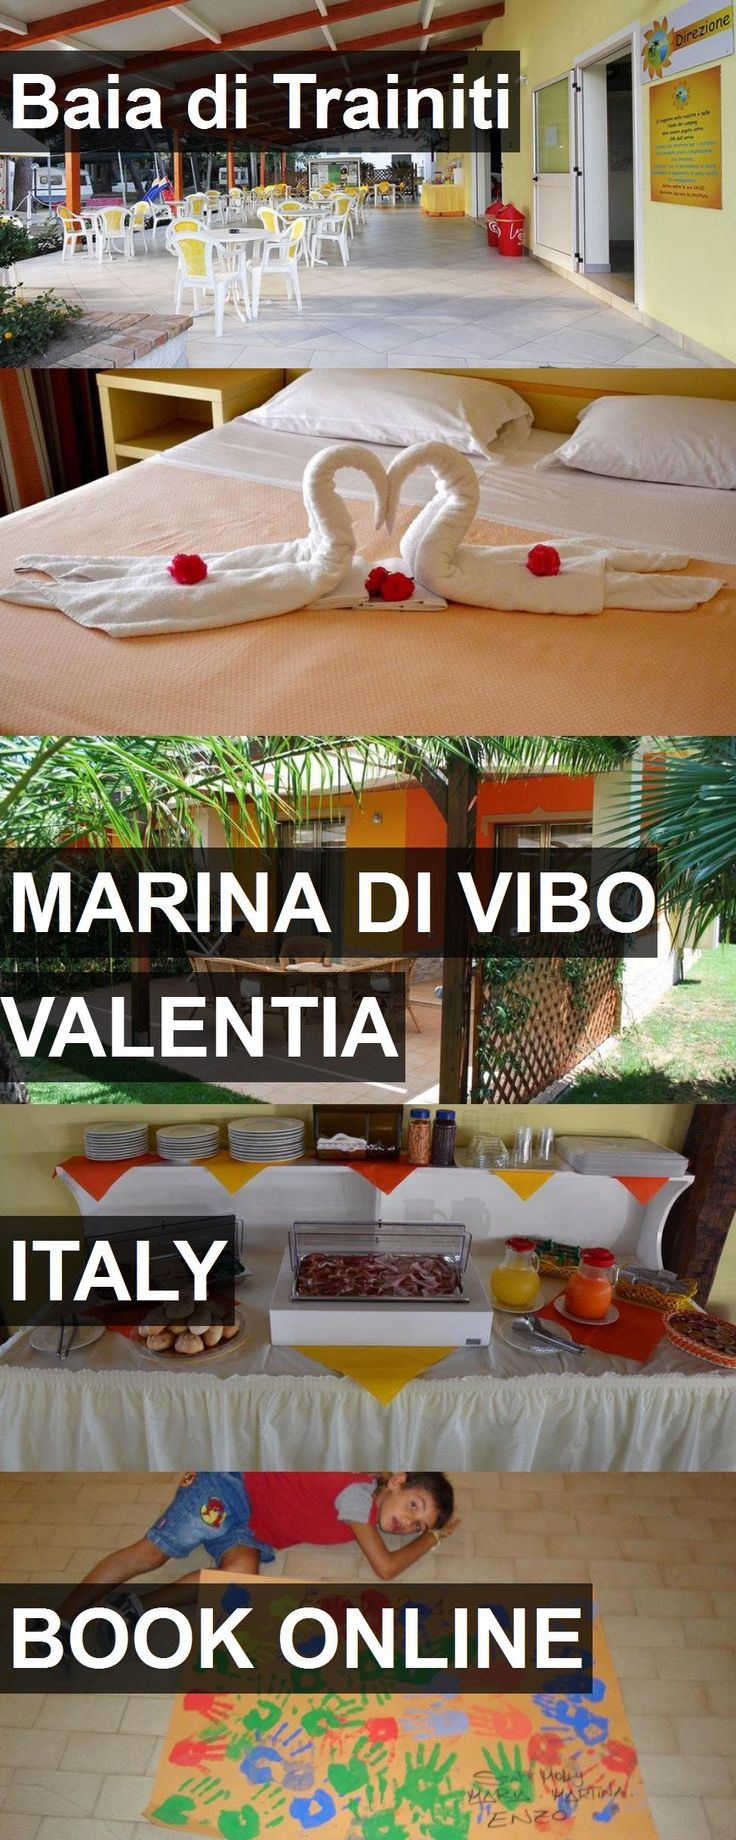 Hotel Baia di Trainiti in Marina di Vibo Valentia, Italy. For more information, photos, reviews and best prices please follow the link. #Italy #MarinadiViboValentia #travel #vacation #hotel